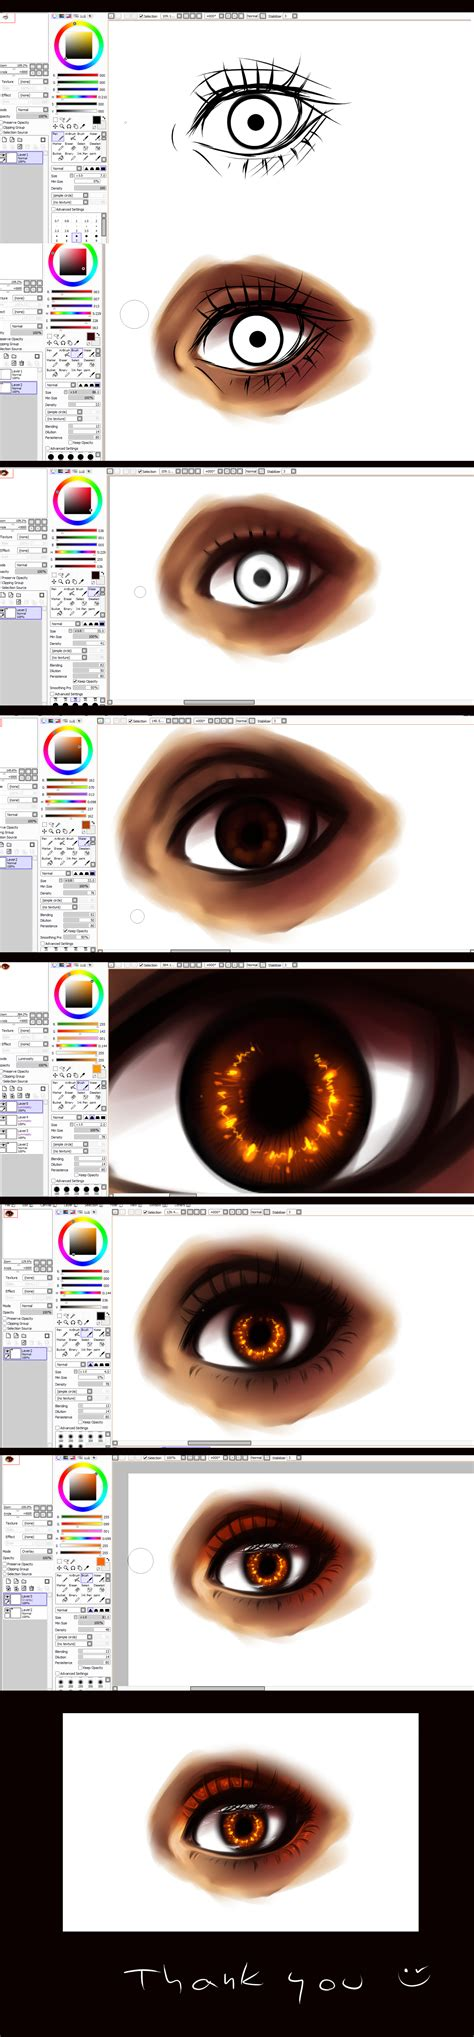 Paint Tool Sai Eye Tutorial By Ryky On Deviantart